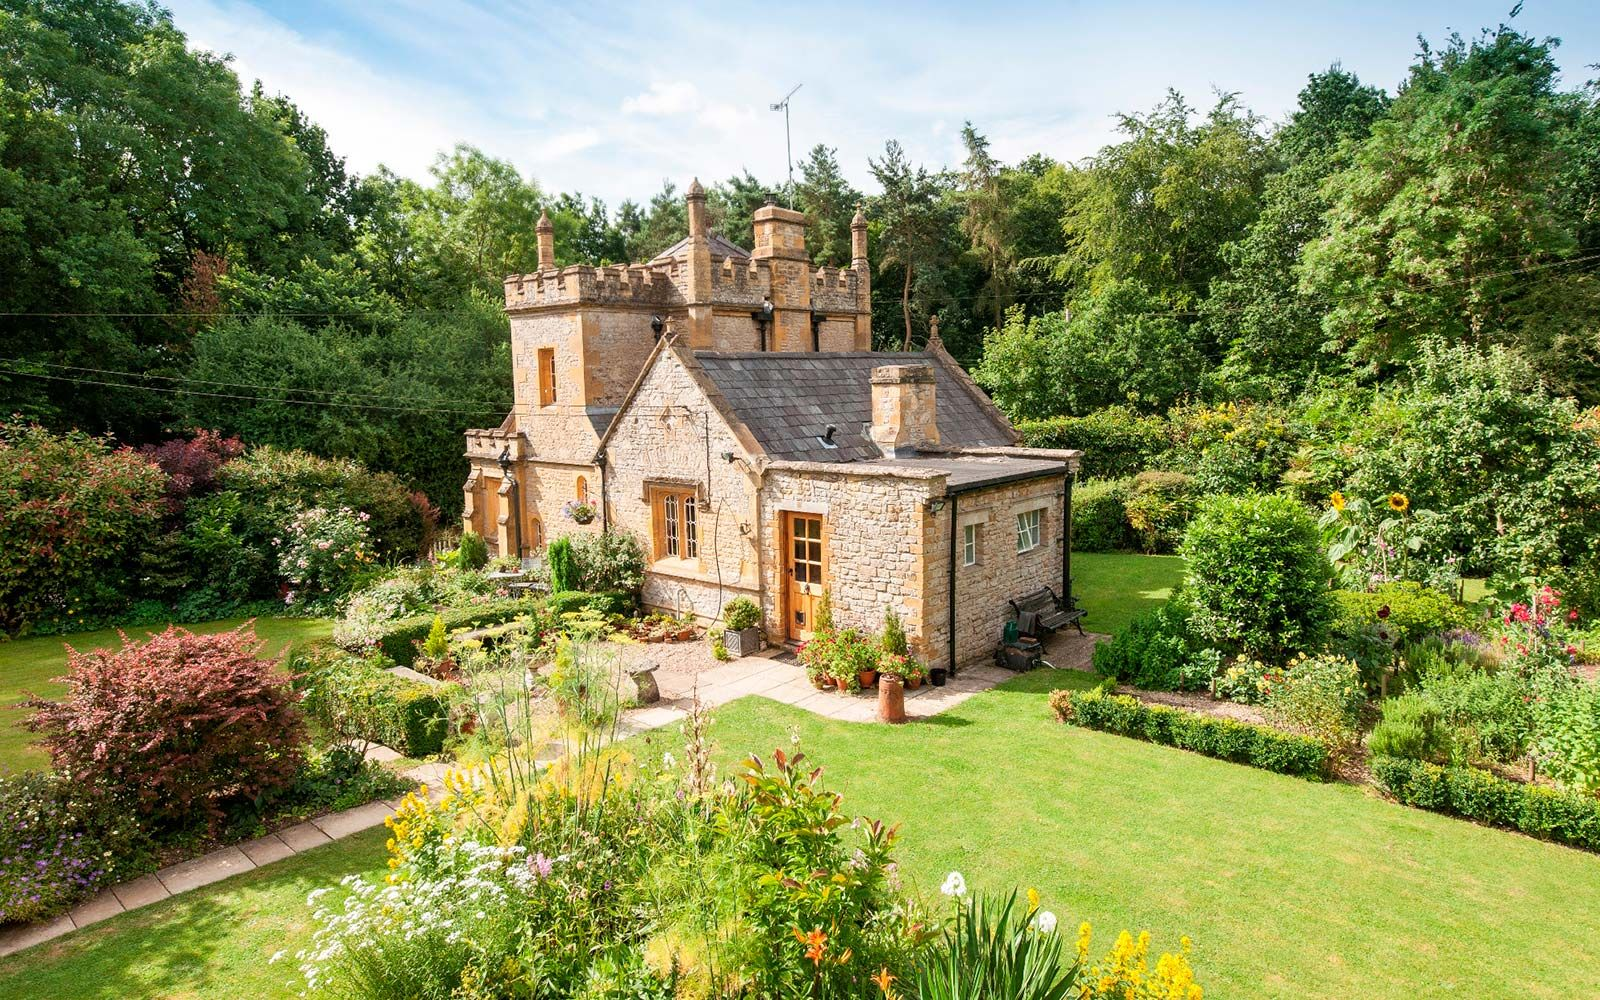 This Adorably Tiny Castle in the U.K. Is for Sale | Castles ...